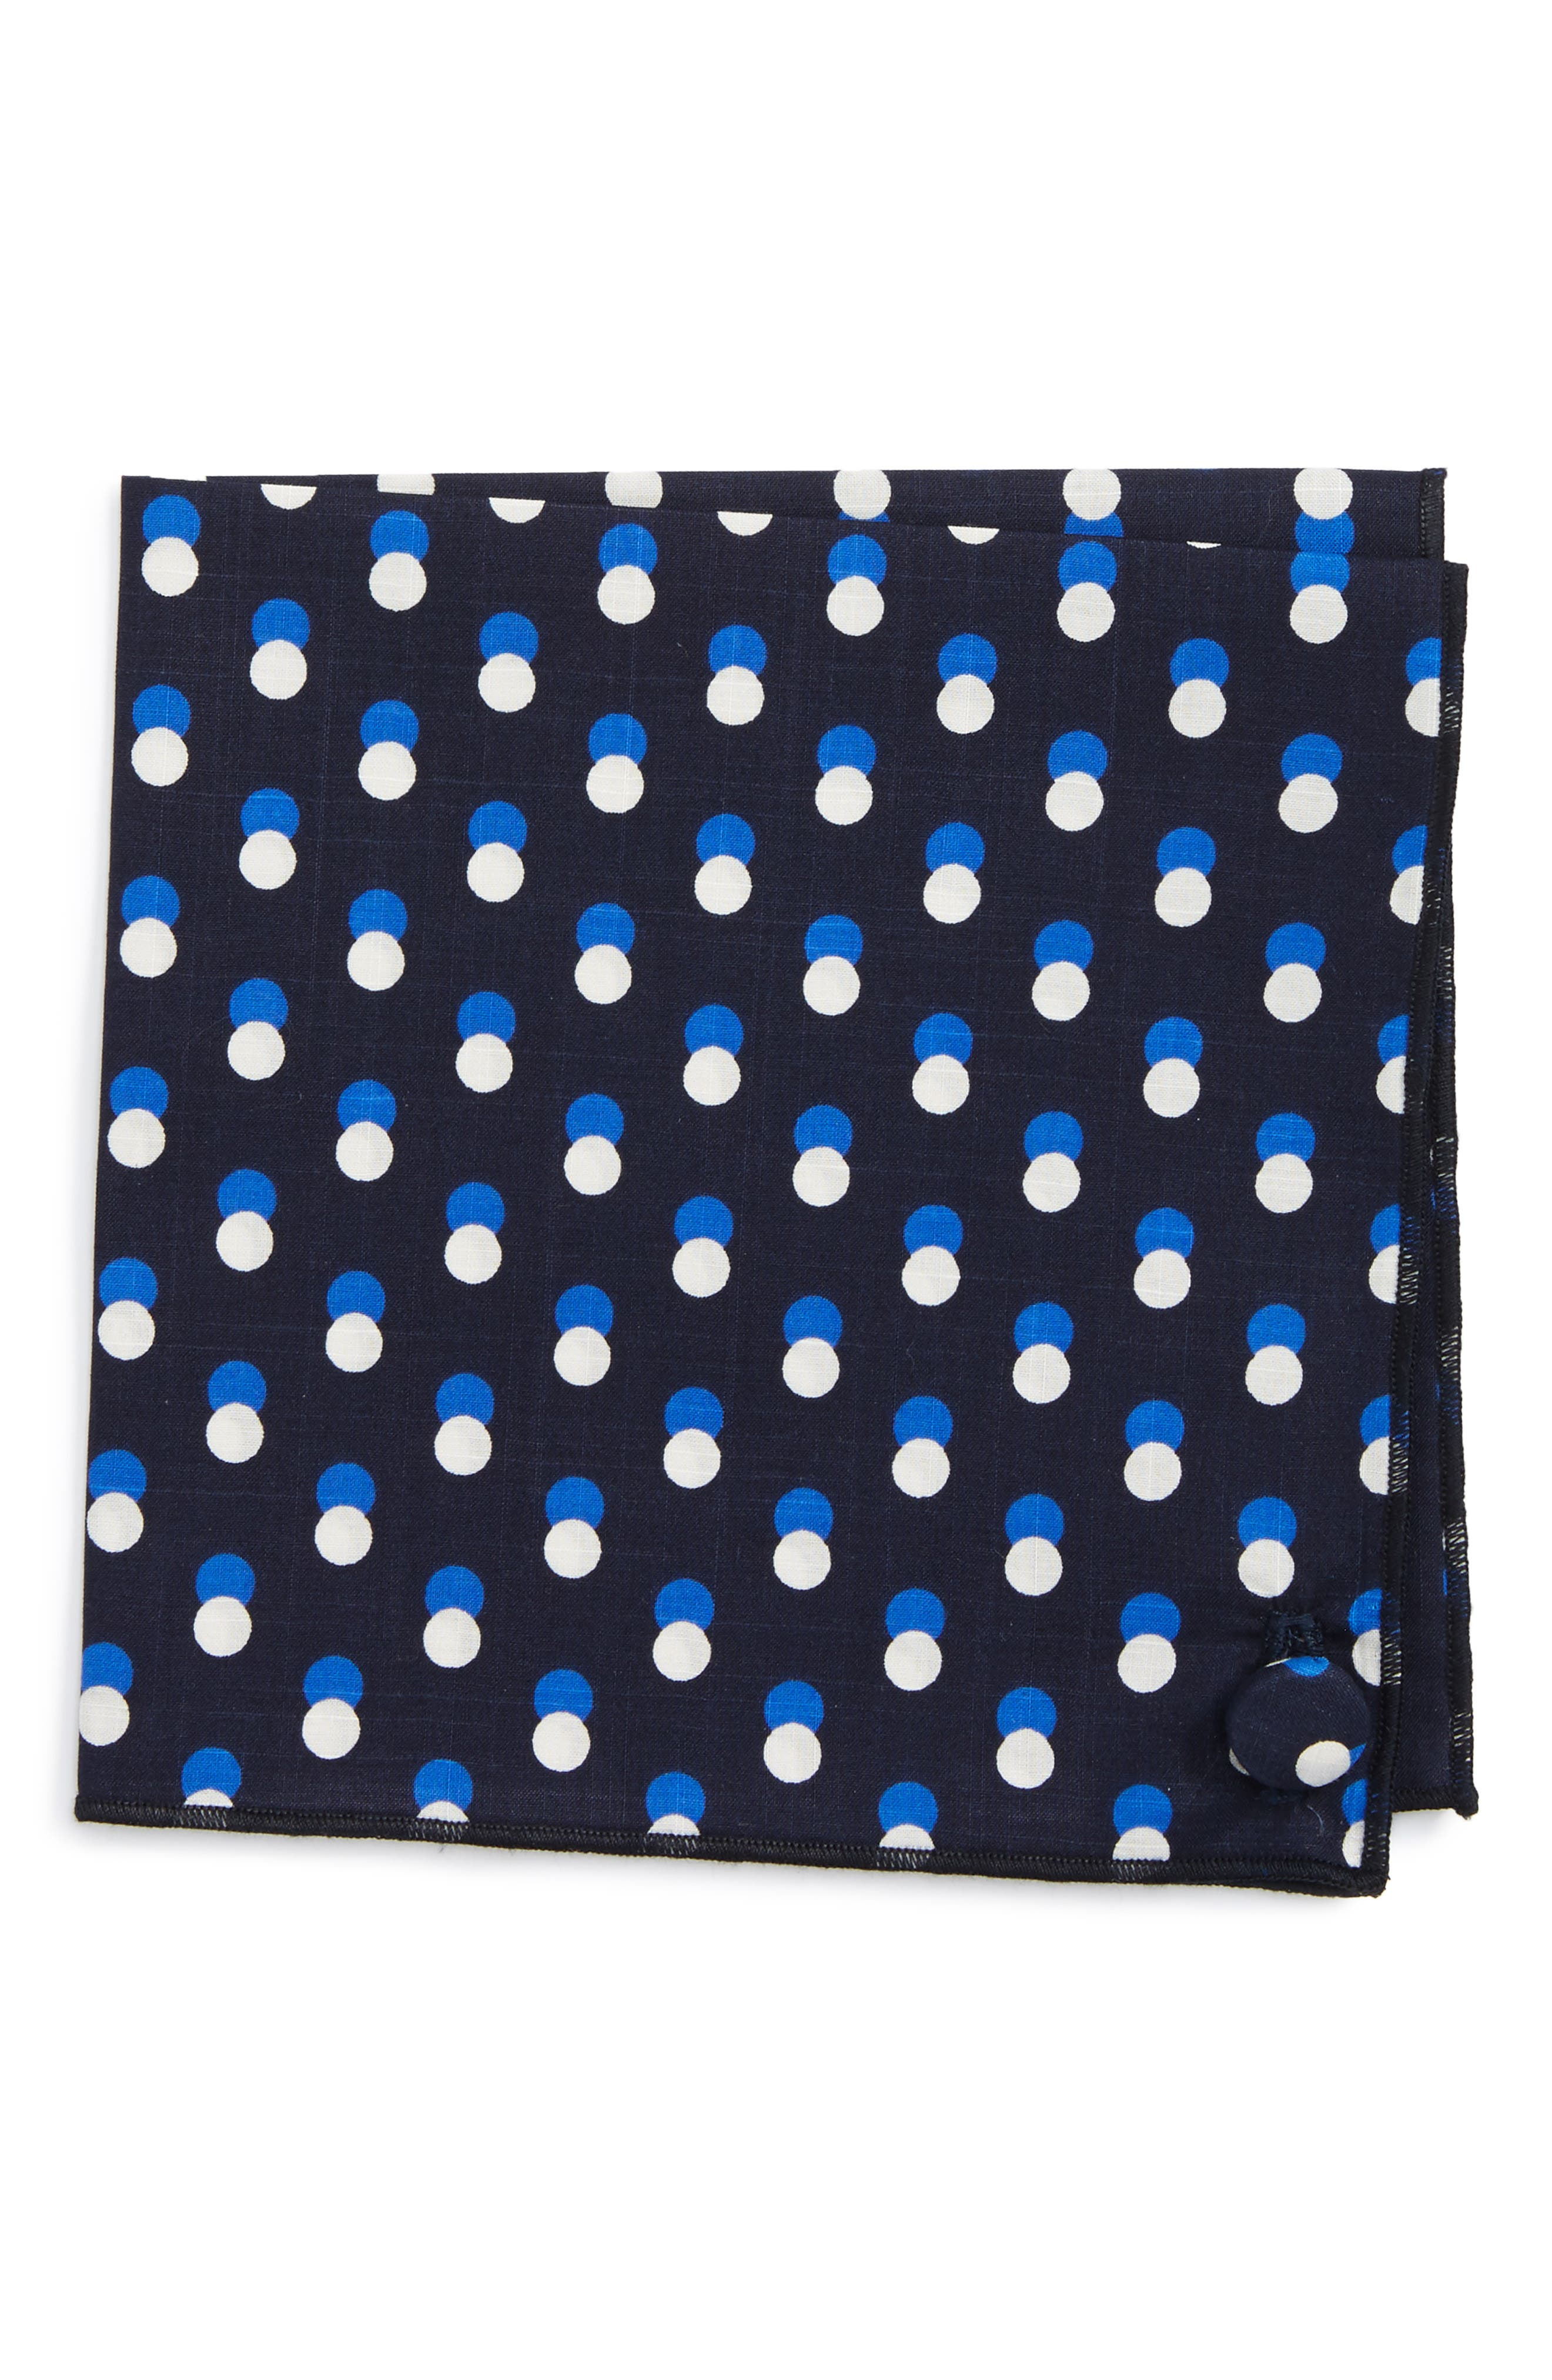 Main Image - Armstrong & Wilson Multi Dots Cotton Pocket Square